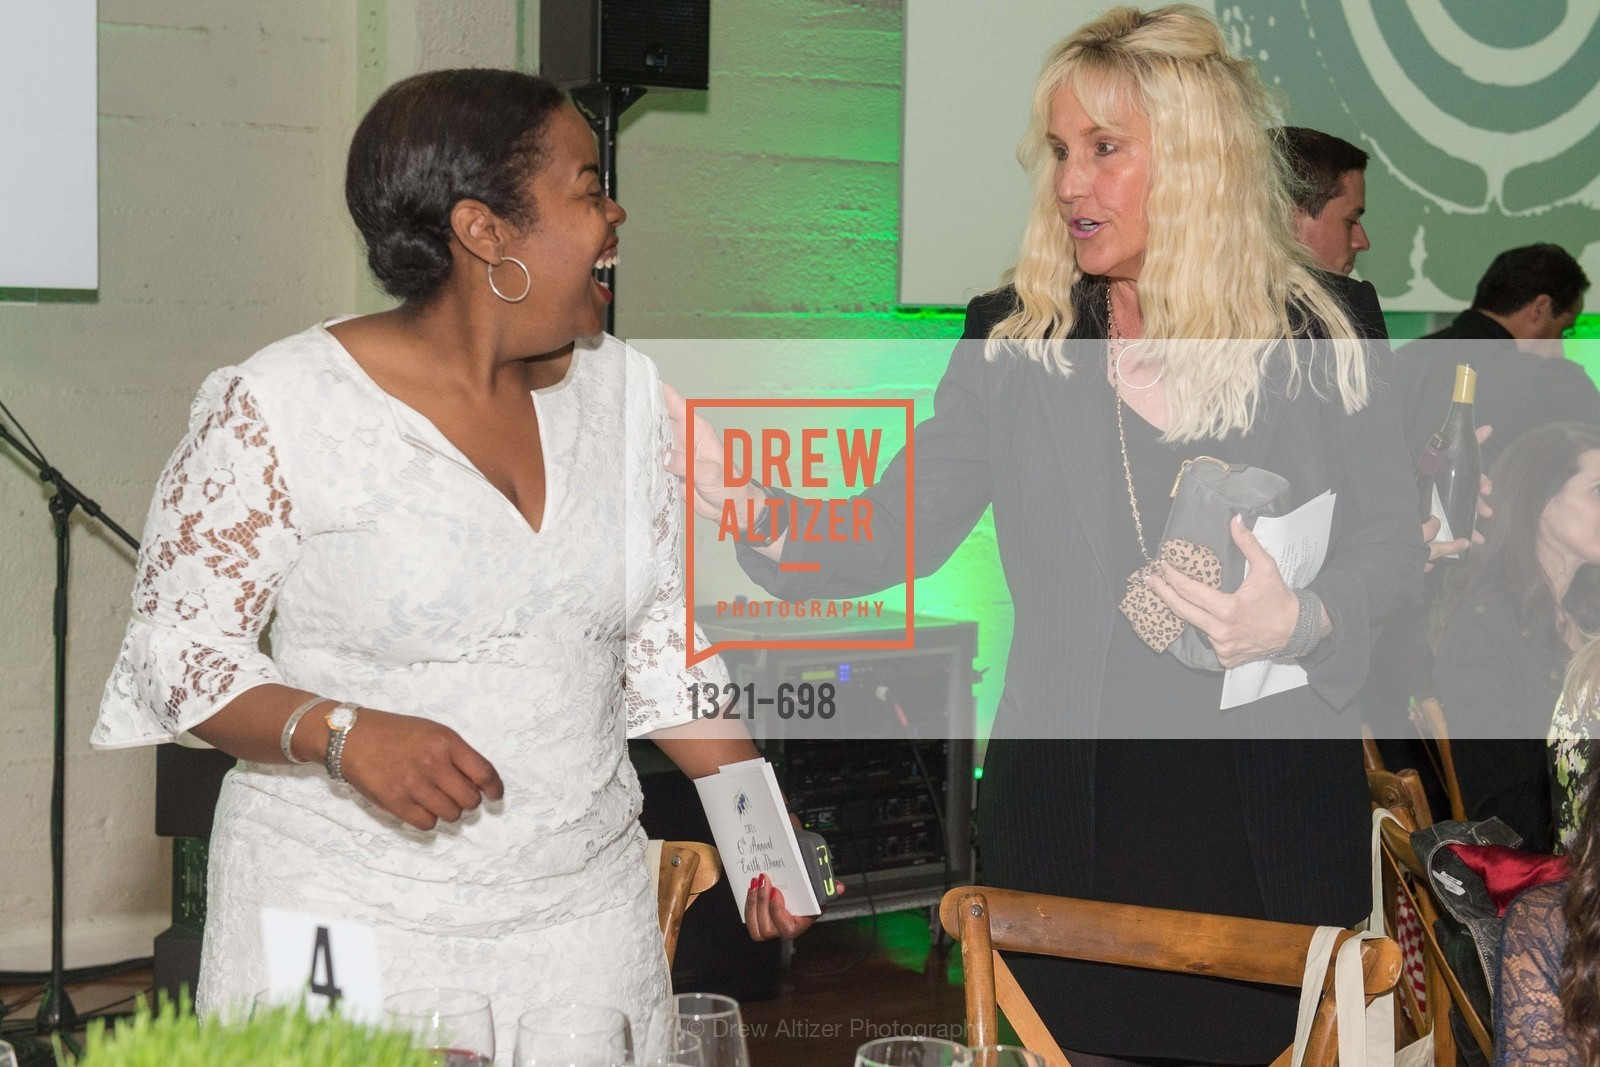 Chantal Walker, Erin Brockovich, EWG's 6th Annual Earth Dinner, US, May 5th, 2015,Drew Altizer, Drew Altizer Photography, full-service agency, private events, San Francisco photographer, photographer california